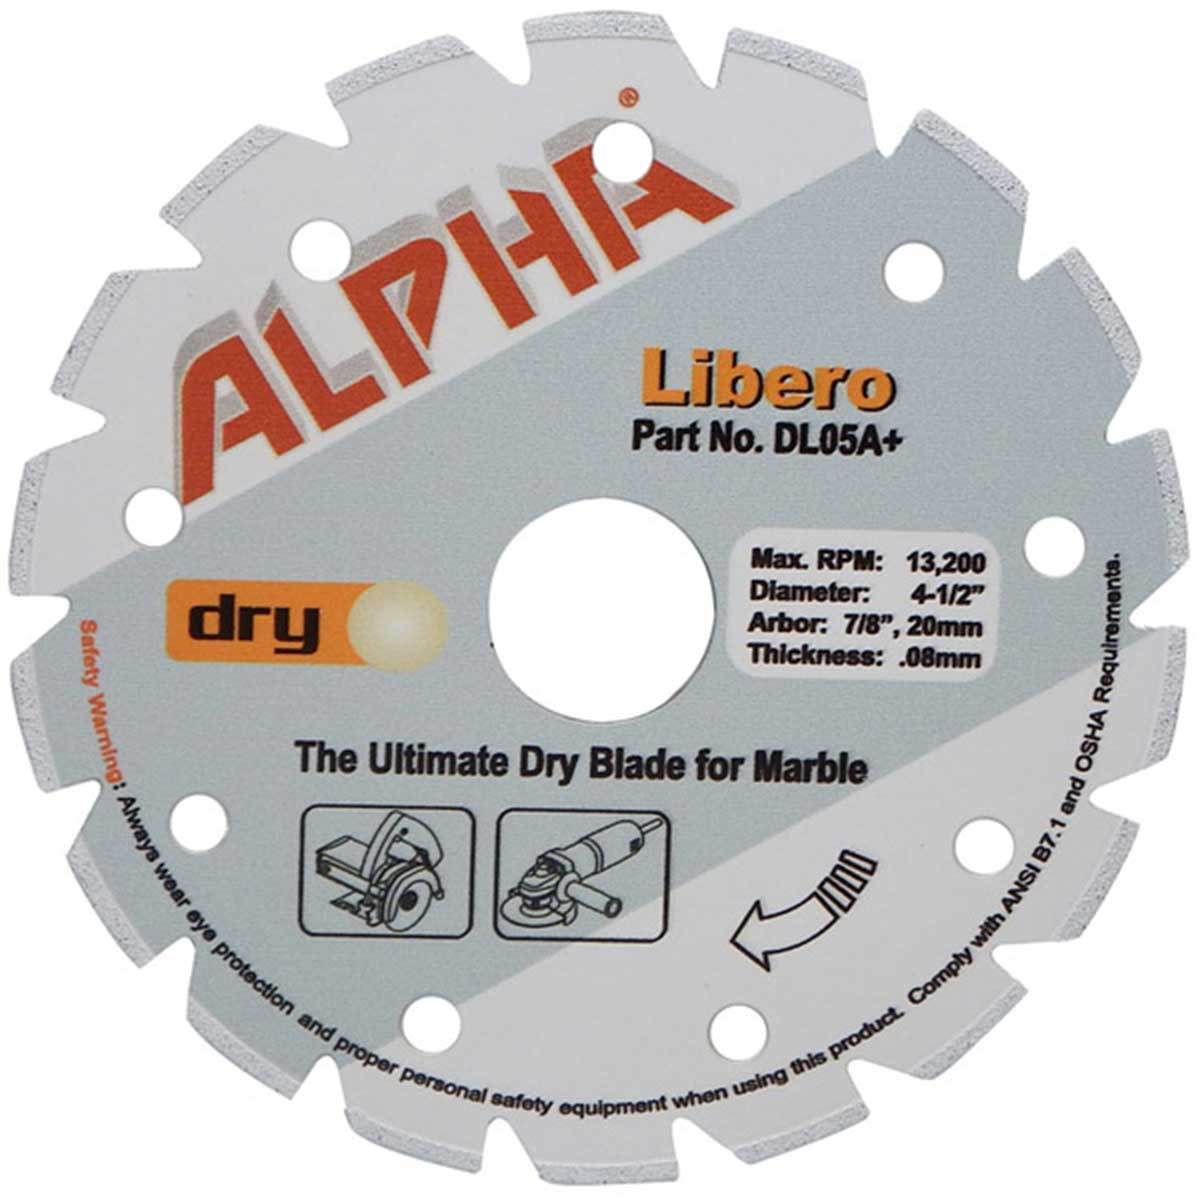 alpha libero 4 1/2in dry marble diamond blade